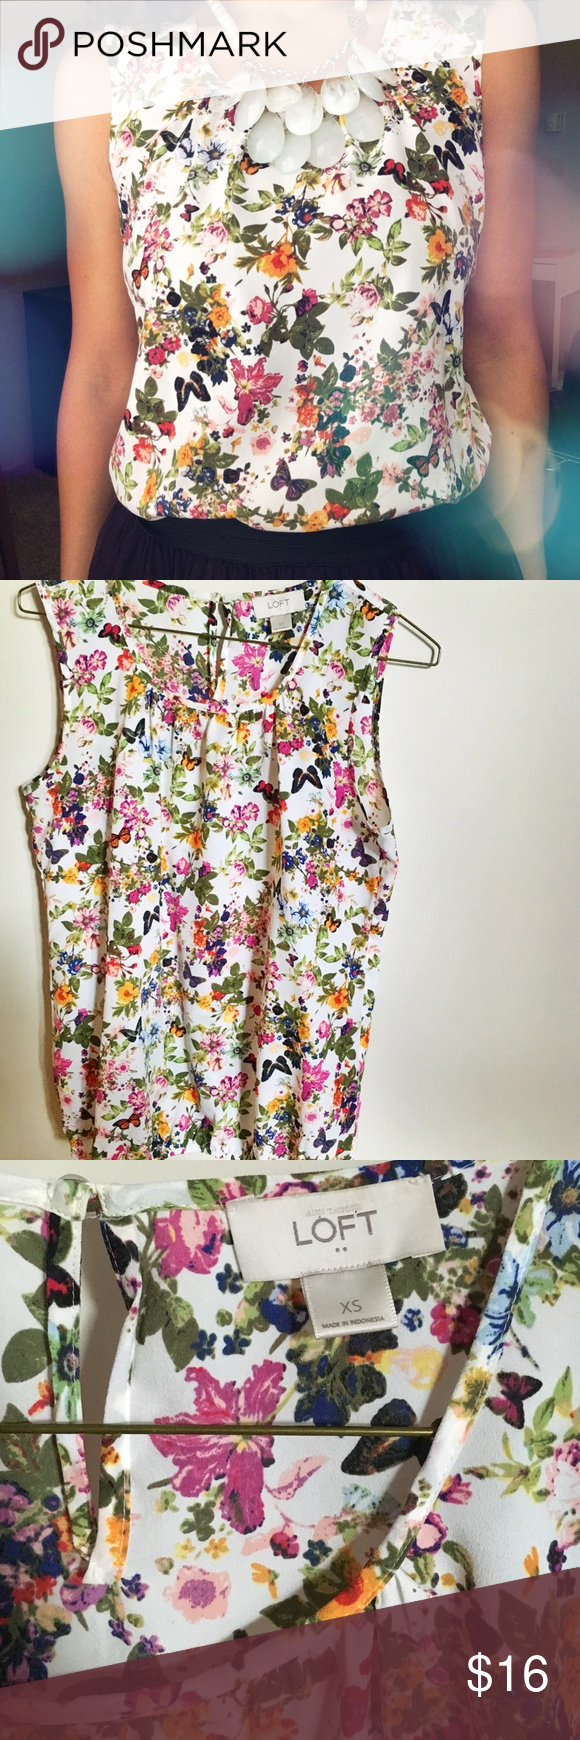 LOFT Floral Tank EUC! Worn only a couple times! Fits like a Small not an XS. Key hole in back neck. Elastic band at the bottom for perfect fit! Airy and light top! LOFT Tops Blouses